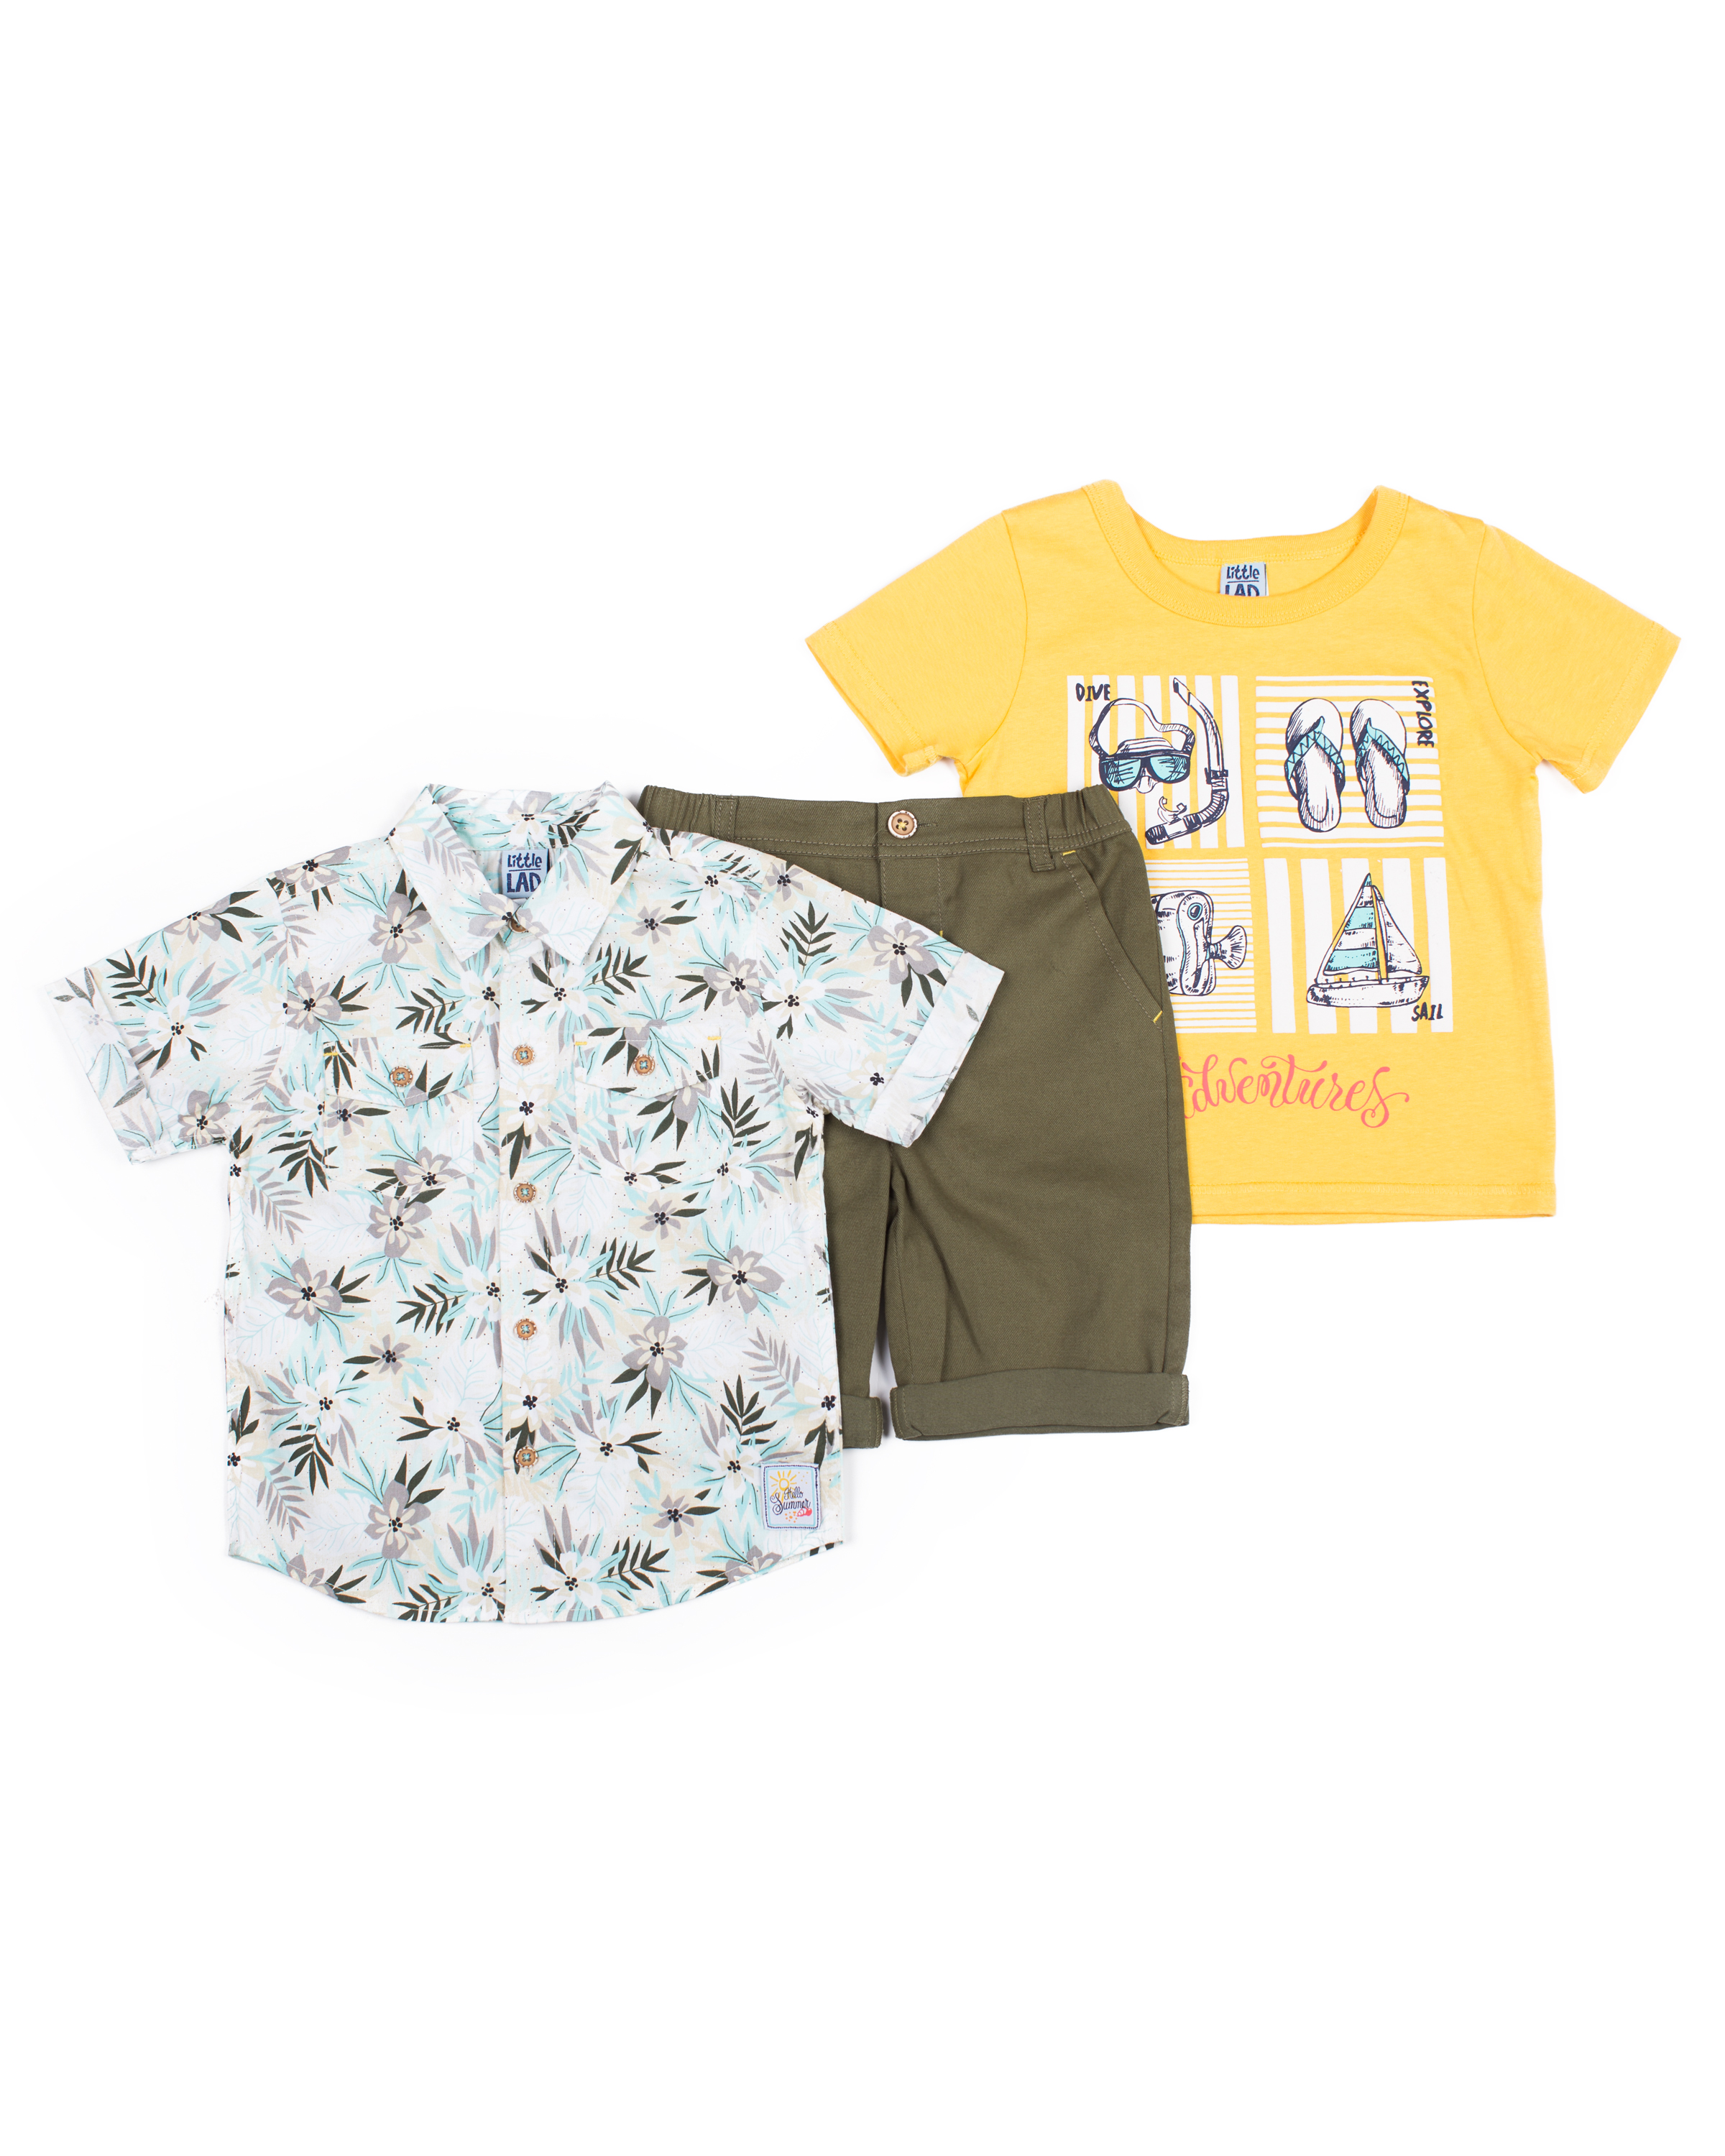 Little Lad Short Sleeve Printed Poplin Button Up Shirt, Short Sleeve  Graphic T-shirt & Drawstring Twill Short, 3pc Outfit Set (Baby Boys &  Toddler